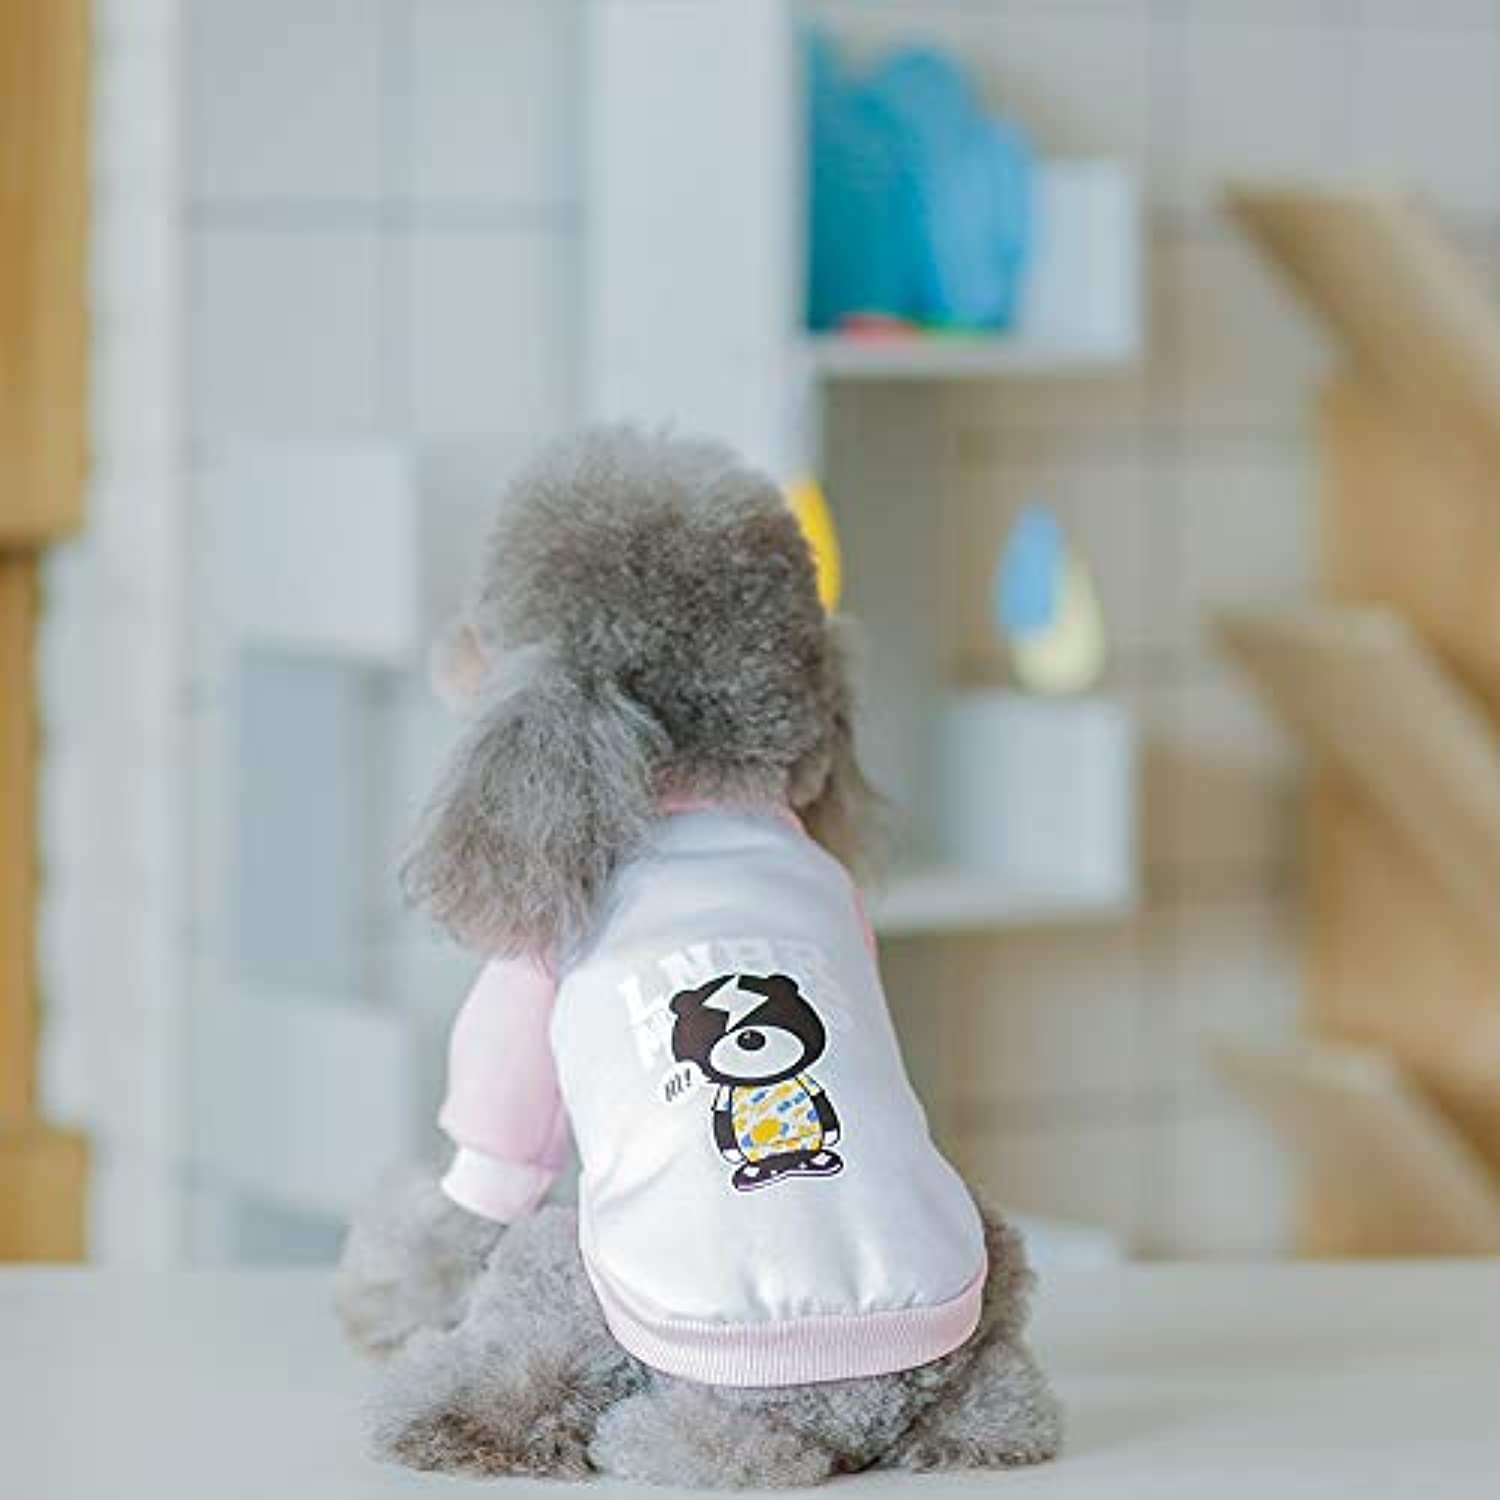 Cat Outwear, Pet Puppy Cat Cute Cotton Warm Hoodies Dog Hoodies Pet Clothes Warm Cute Cotton Soft Puppy Outfit,Pink,XXL